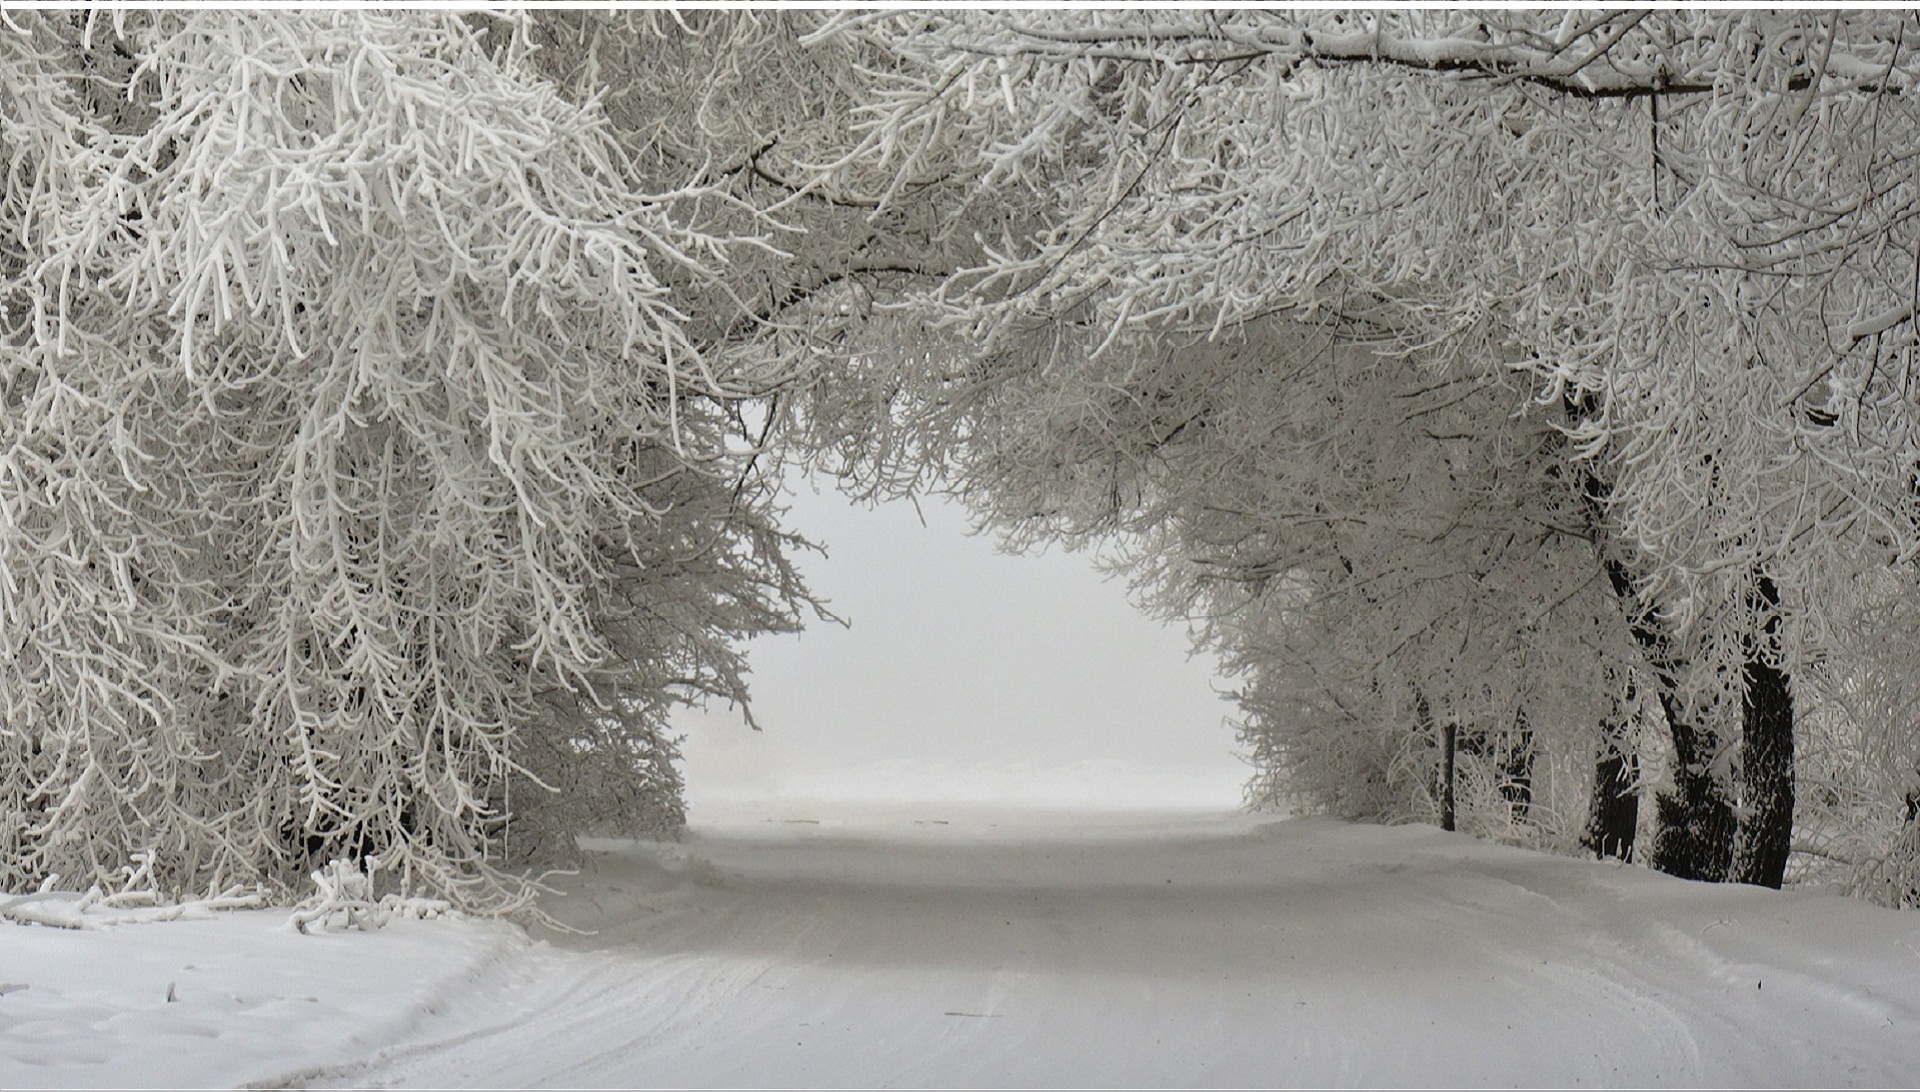 Free photo: Snow, Winter, Landscape, Branches - Free Image on ...